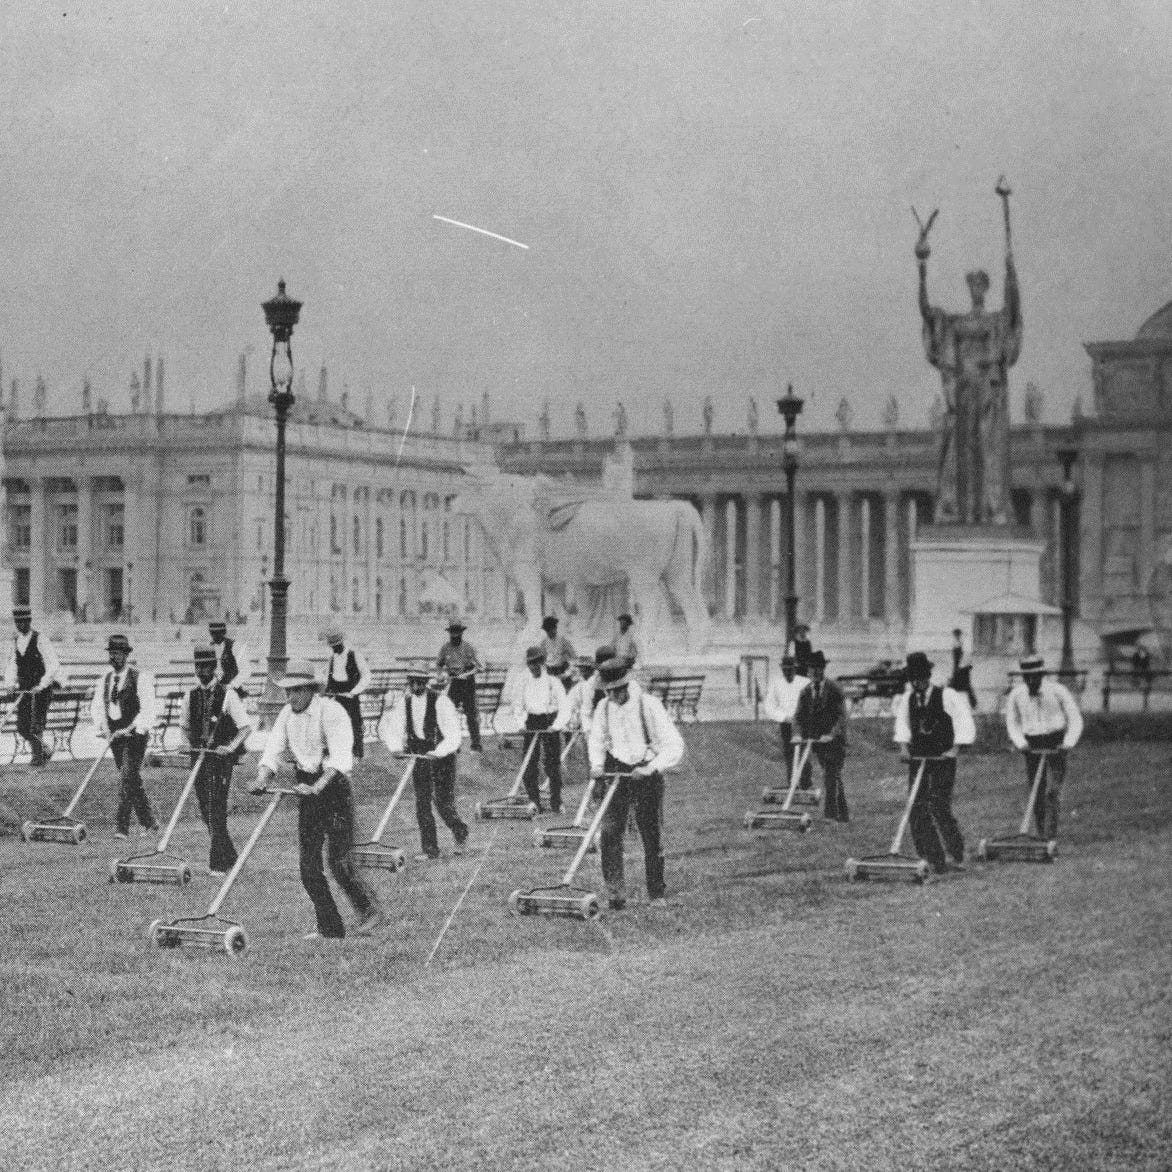 Men give a choreographed demonstration of Elwood McGuire's lawn mower in 1893 during the Columbian Exposition in Chicago.